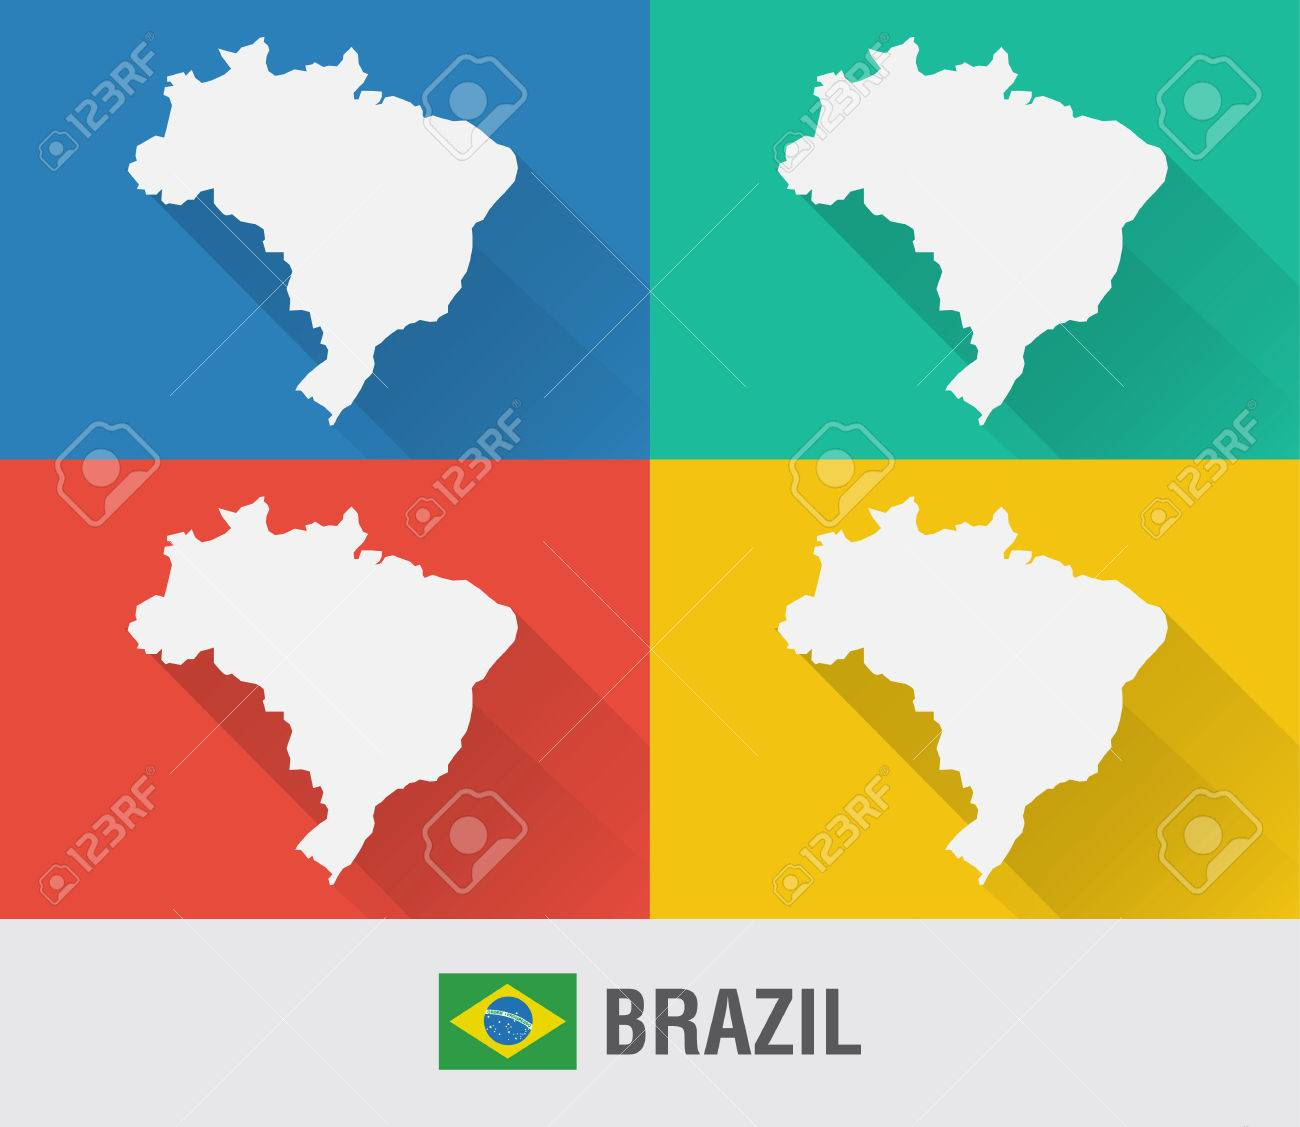 Brazil world map in flat style with 4 colors modern map design brazil world map in flat style with 4 colors modern map design stock vector gumiabroncs Choice Image